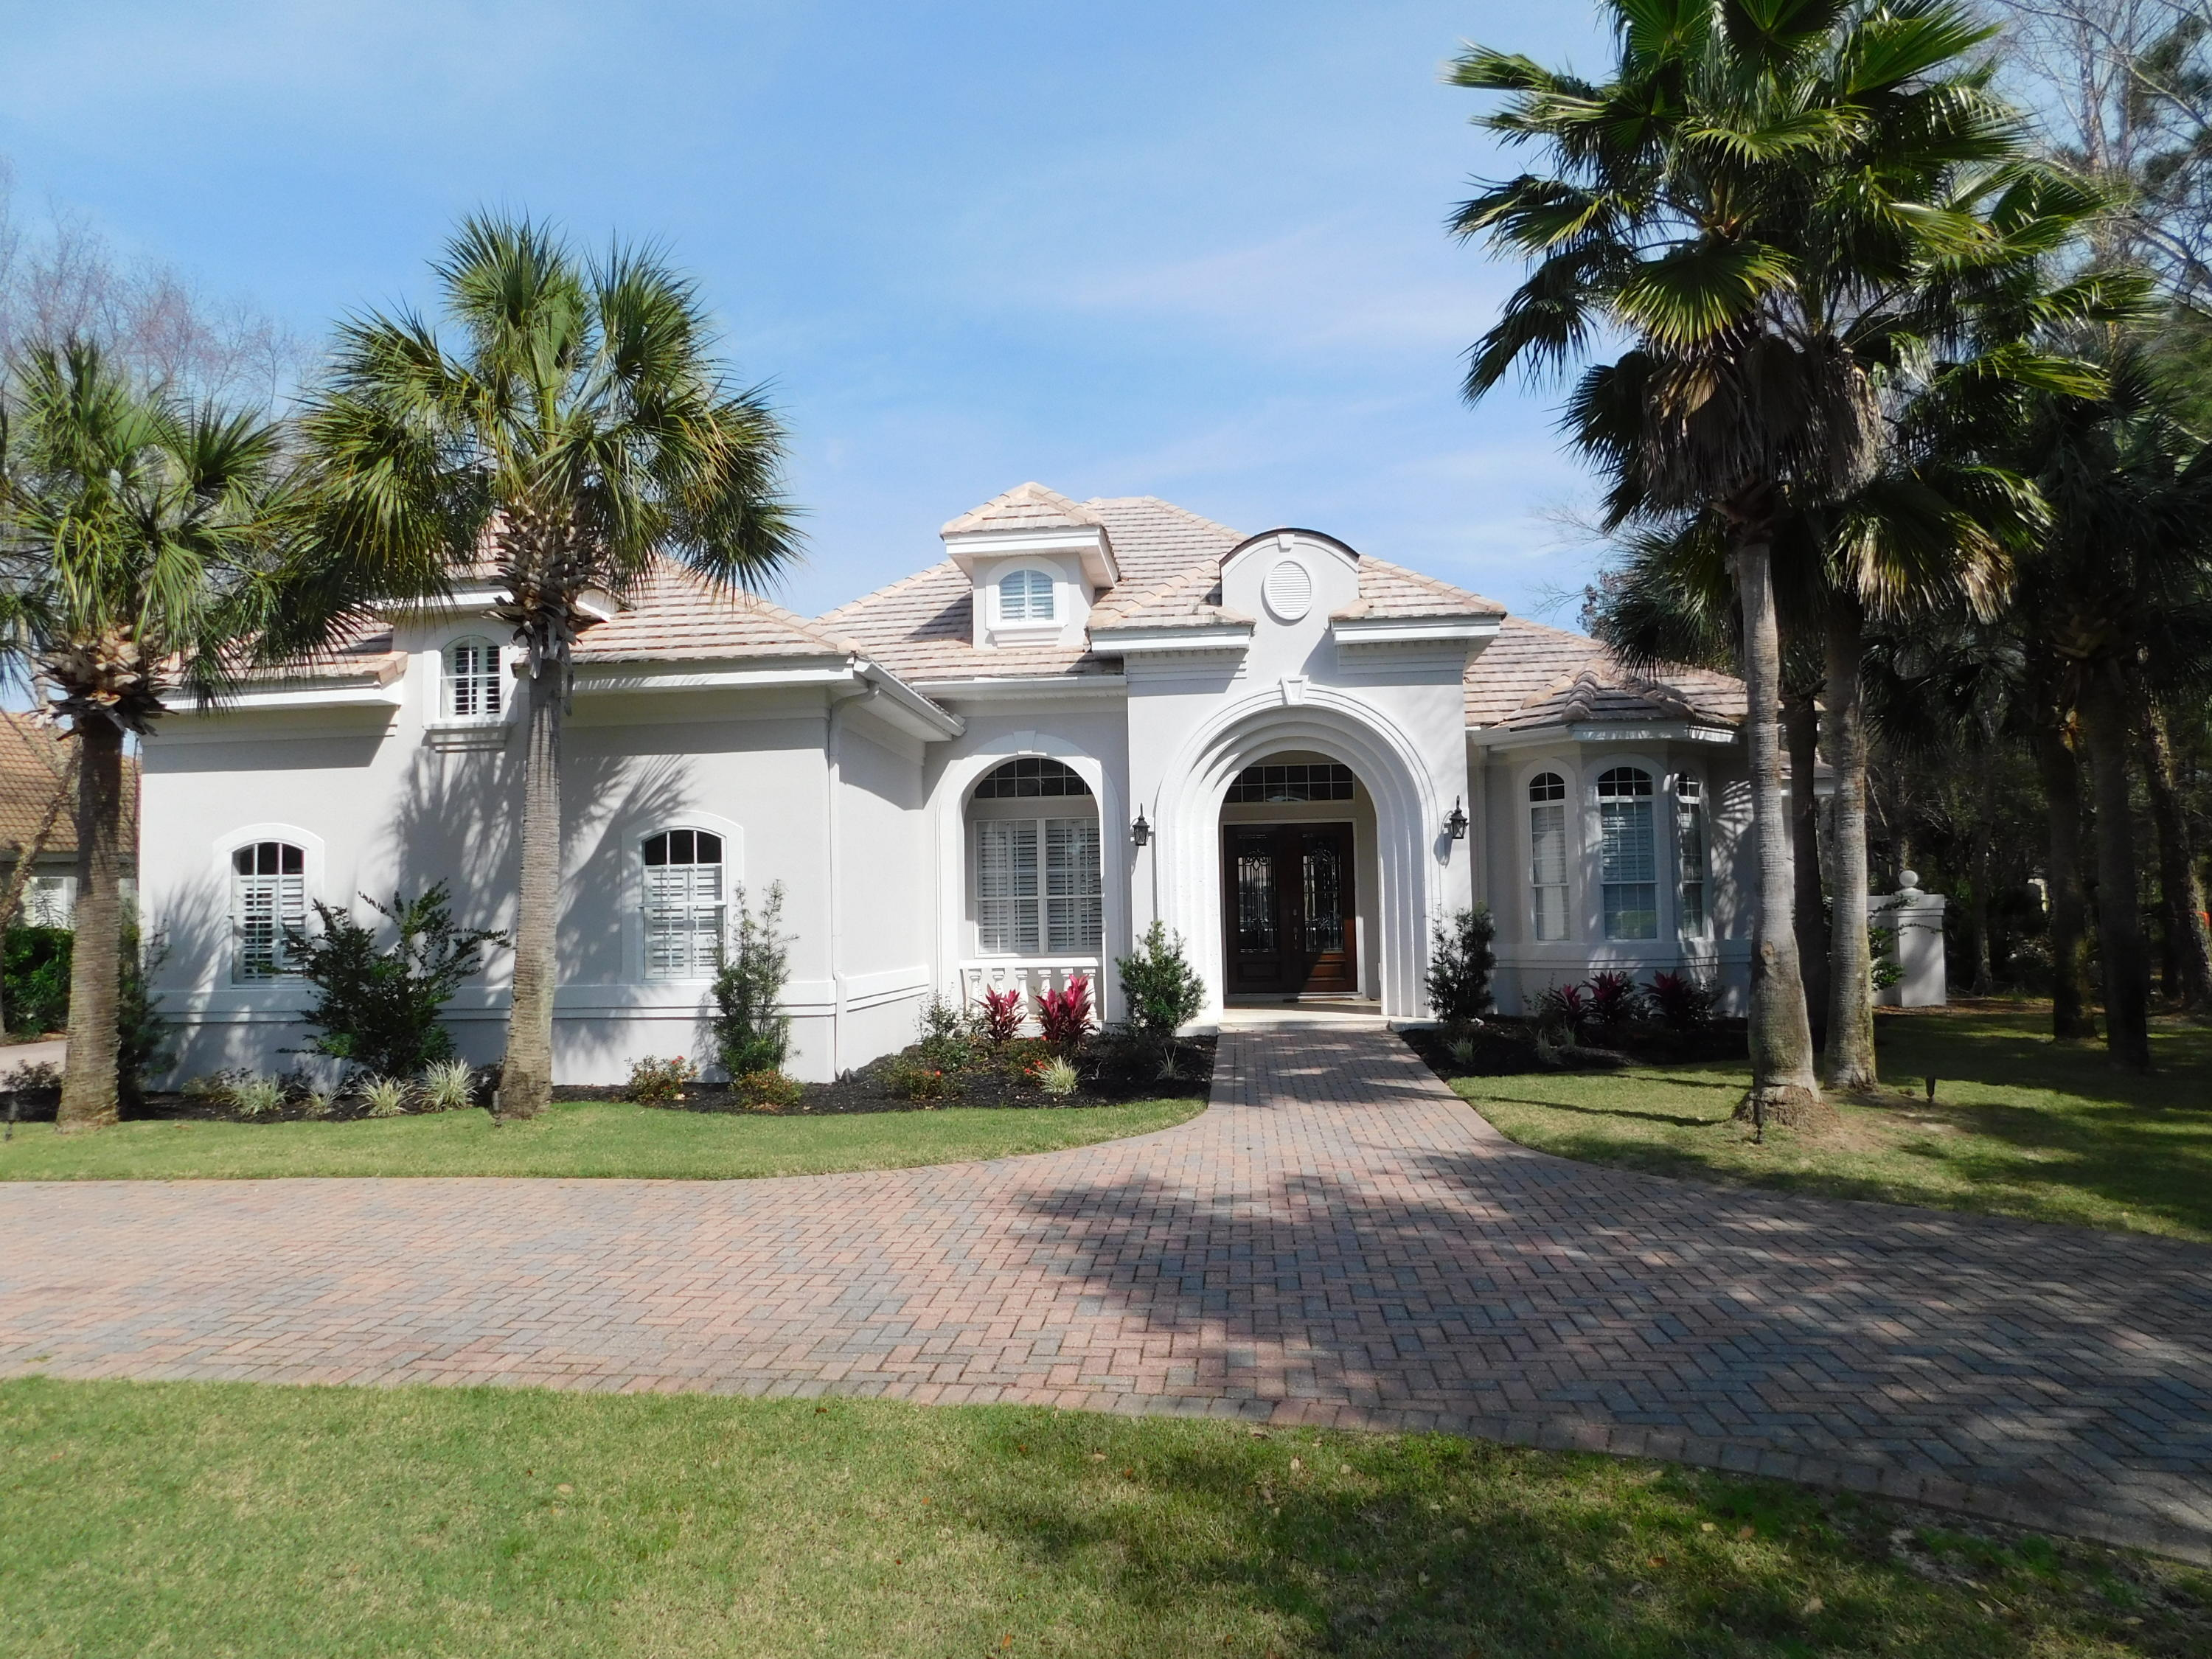 Come Home to your Majestic Tuscan Style Lake Home, located within the gates of Regatta Bay Golf and